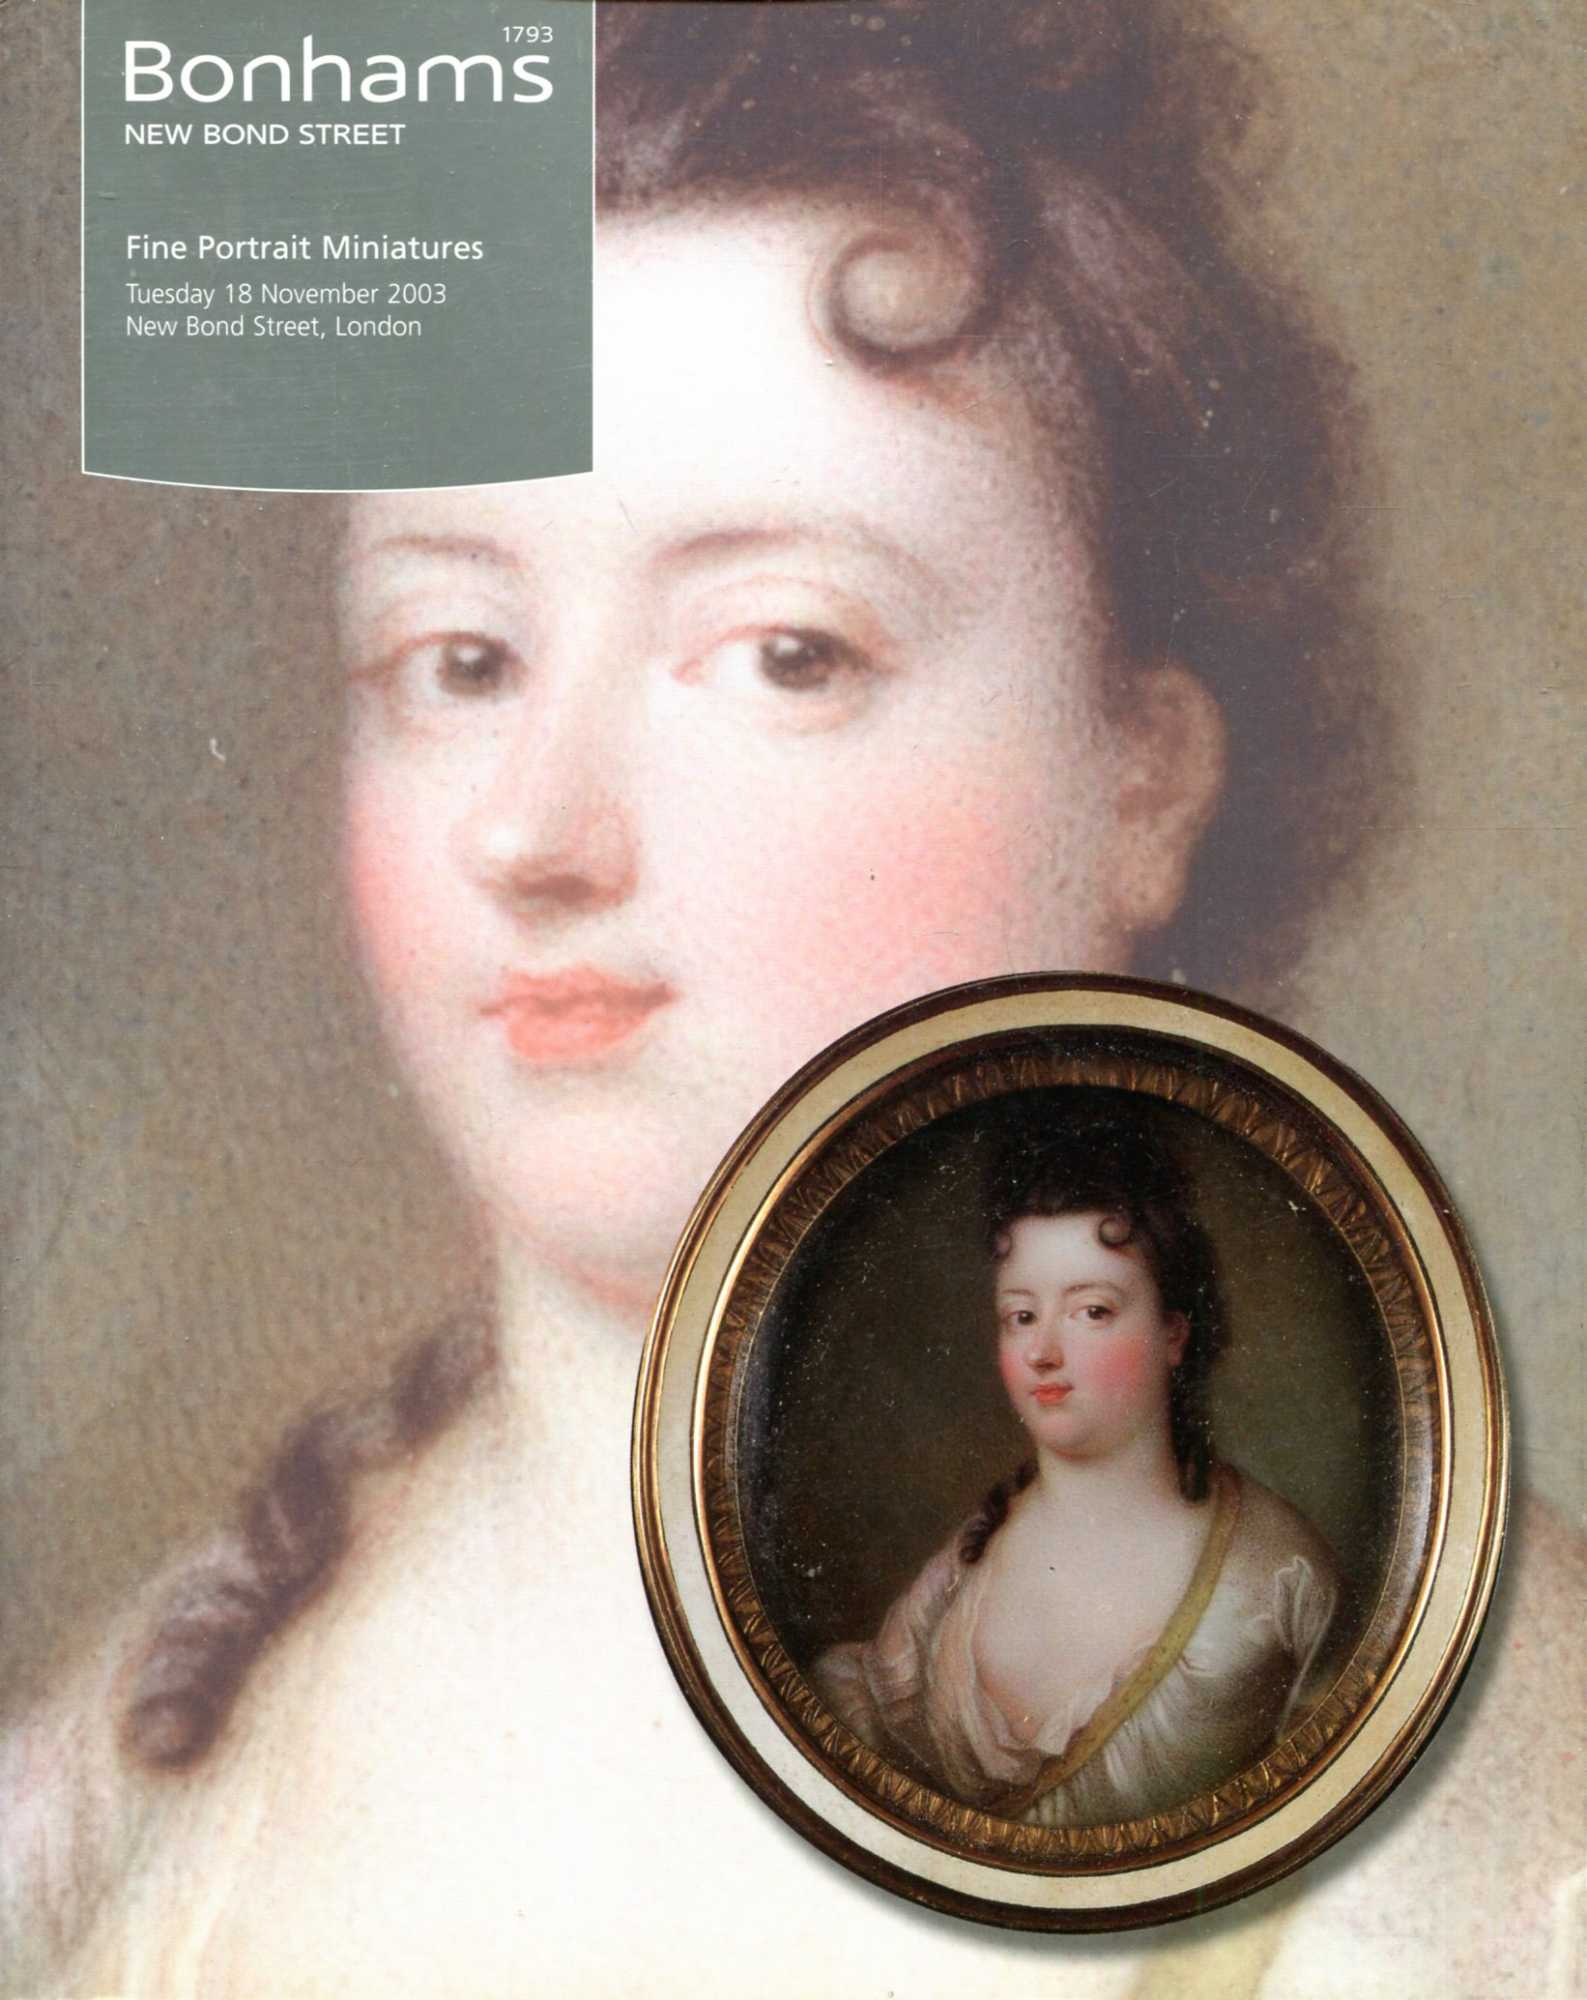 Image for Fine Portrait Miniatures 18 November 2003